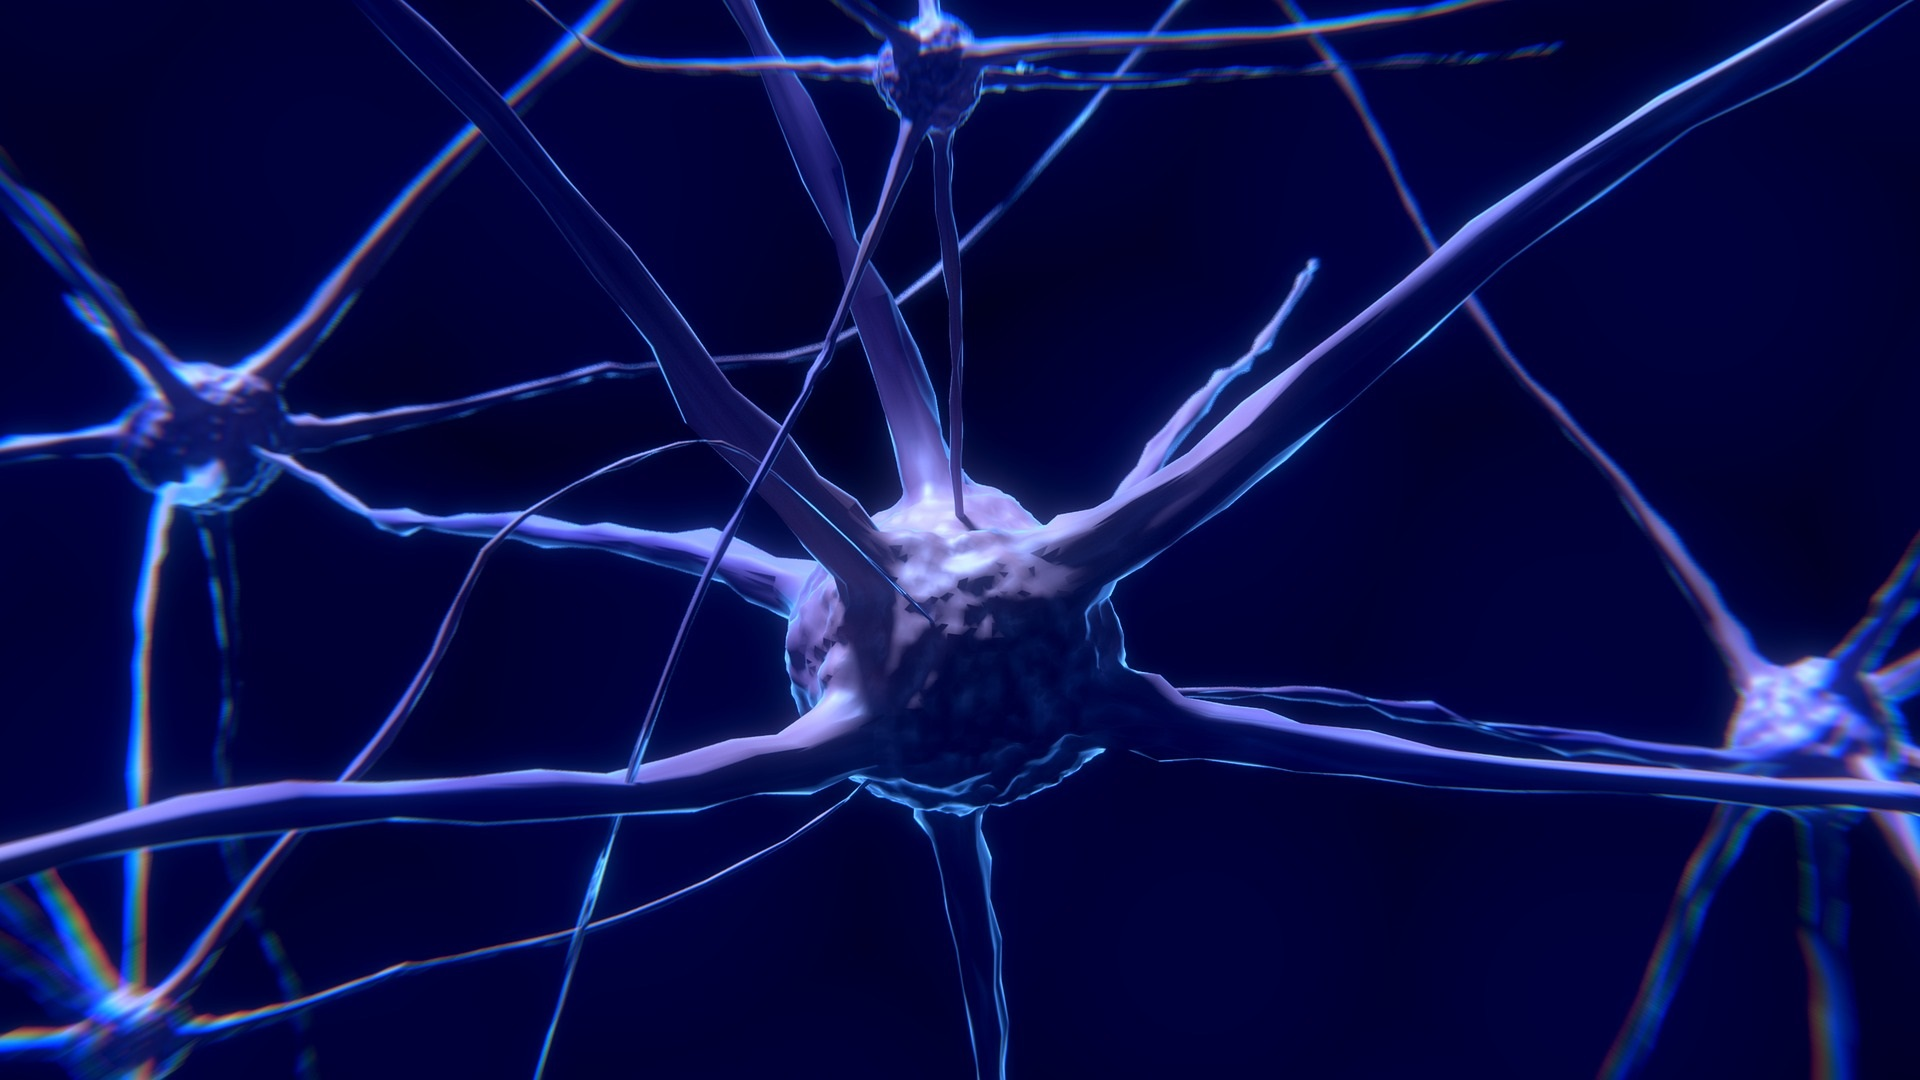 Image of neuron and the effects of alcohol on the human brain